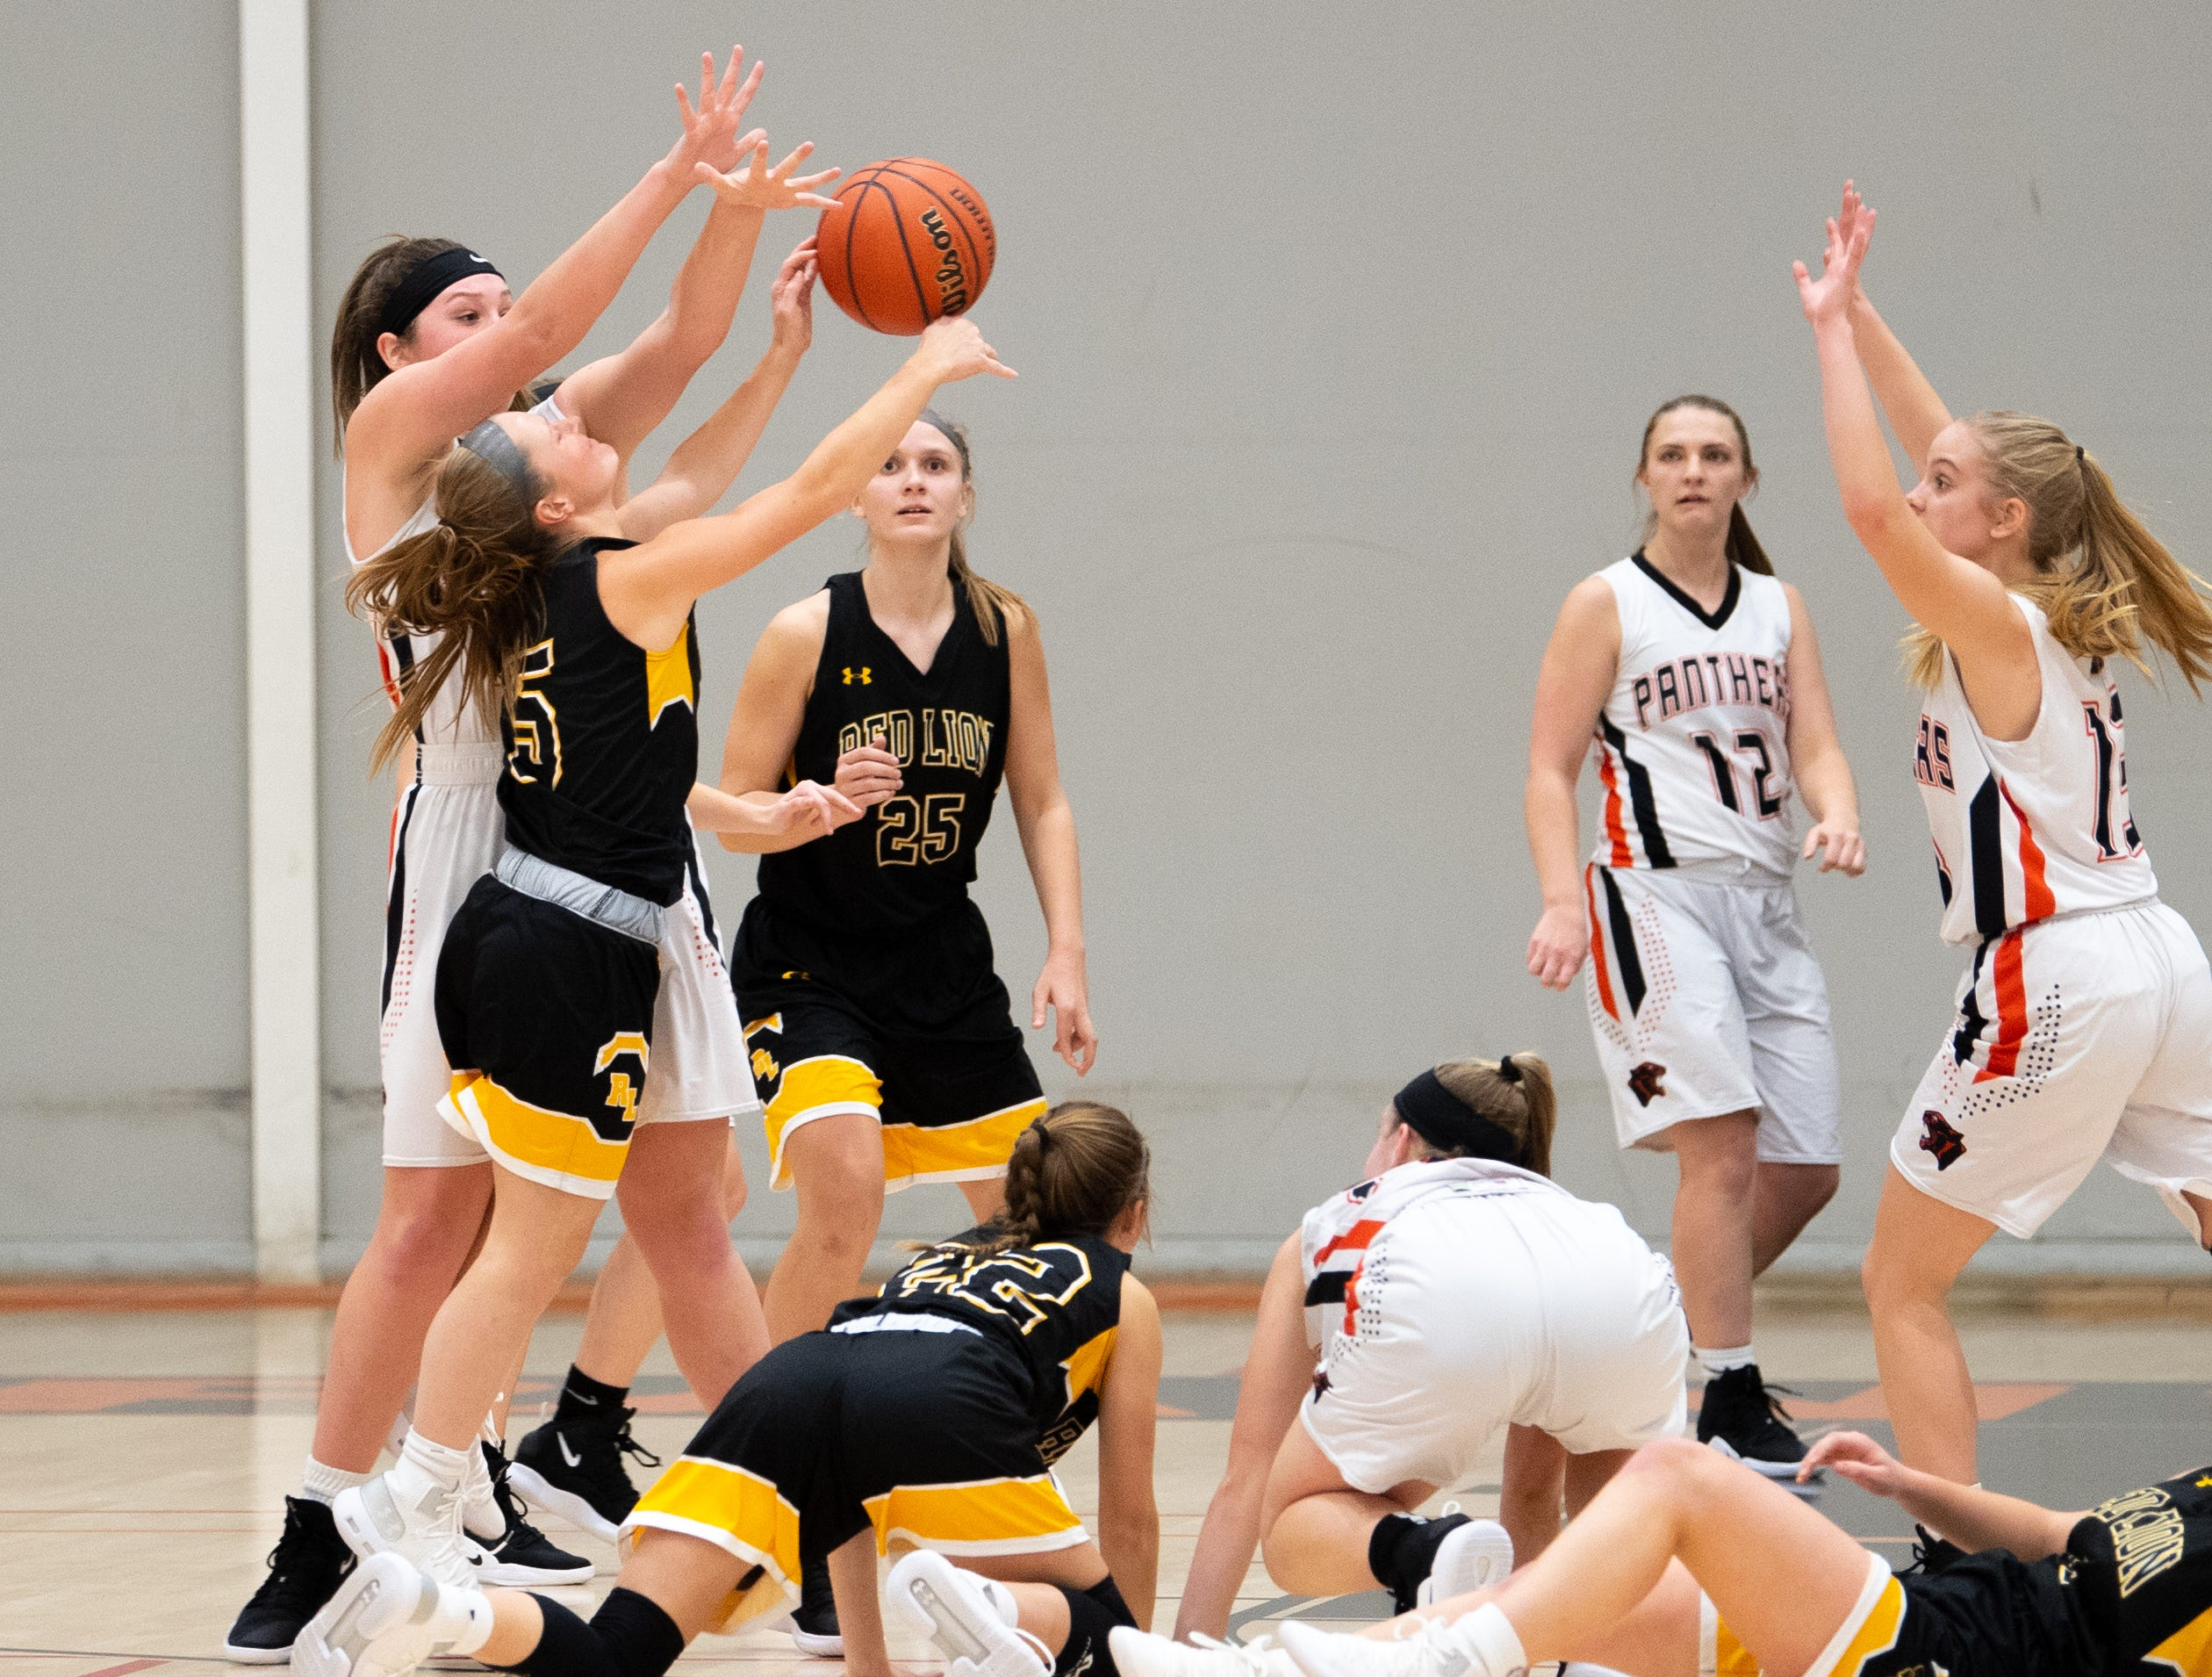 Emily Tollinger (5) of Red Lion throws up a last second shot during the girls' basketball game between Central York and Red Lion at Central York, Tuesday, December 11, 2018. The Panthers defeated the Lions 40-38.